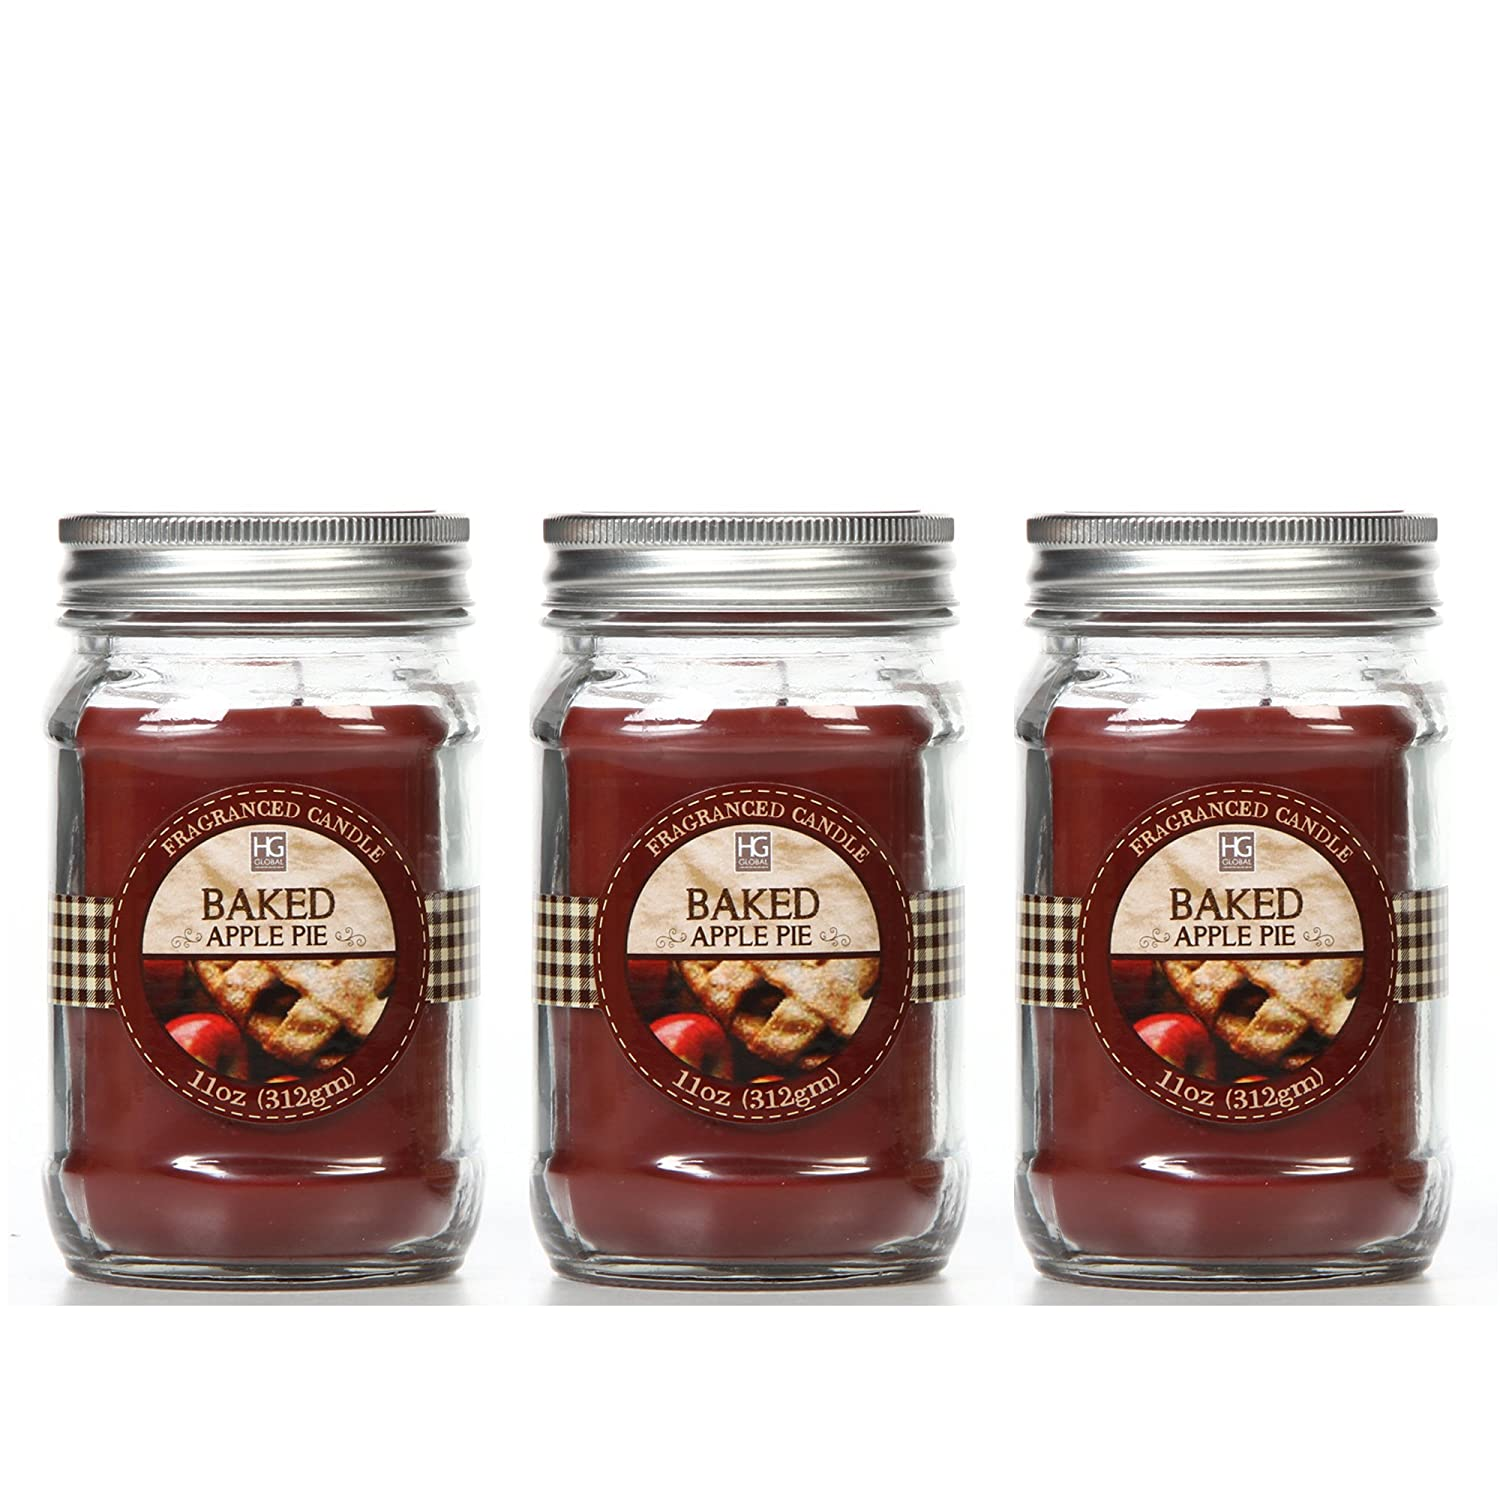 Hosley ® Premium, Set of 3 Baked Apple Jar Candle - 11oz Each. Bulk Buy. Great Gift Weddings, party, aromatherapy, spa, meditation or kitchen Hosley ® Premium HG Global FBA-BS52677WD-3-EA